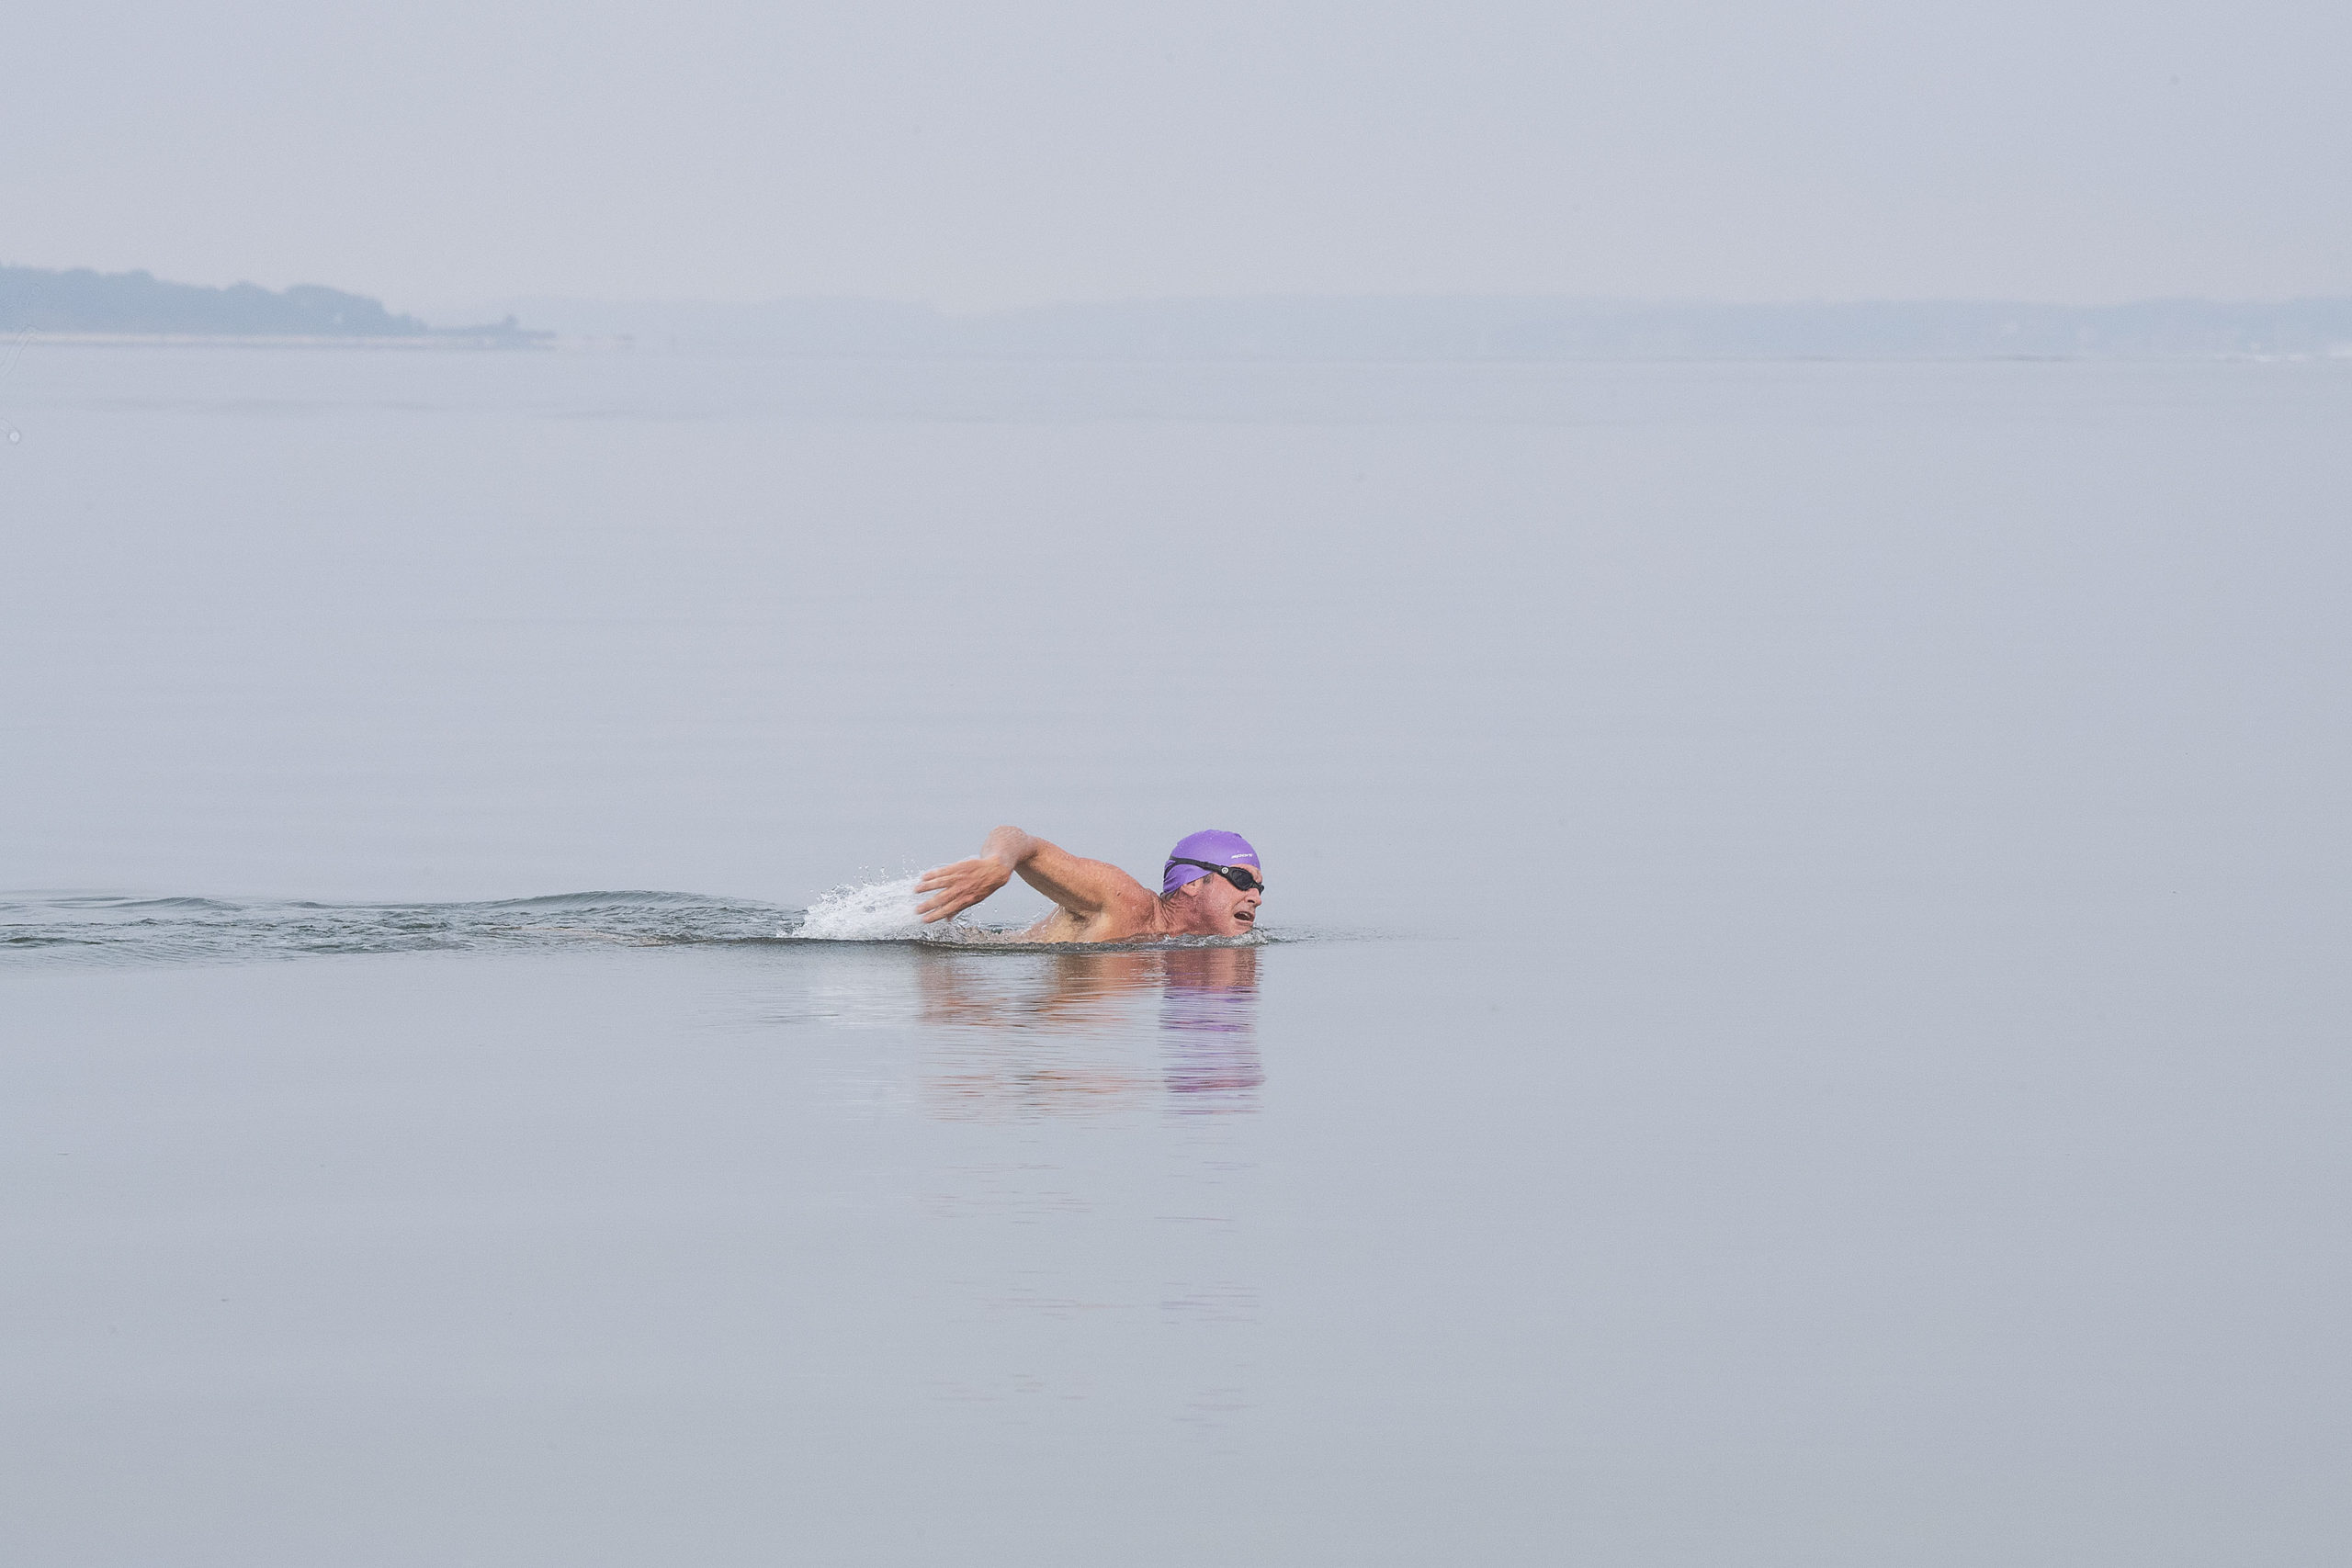 A competitor swims during the first leg of the Hamptons Young at Heart Triathlon, held at Long Beach in Sag Harbor on Saturday, July 17.